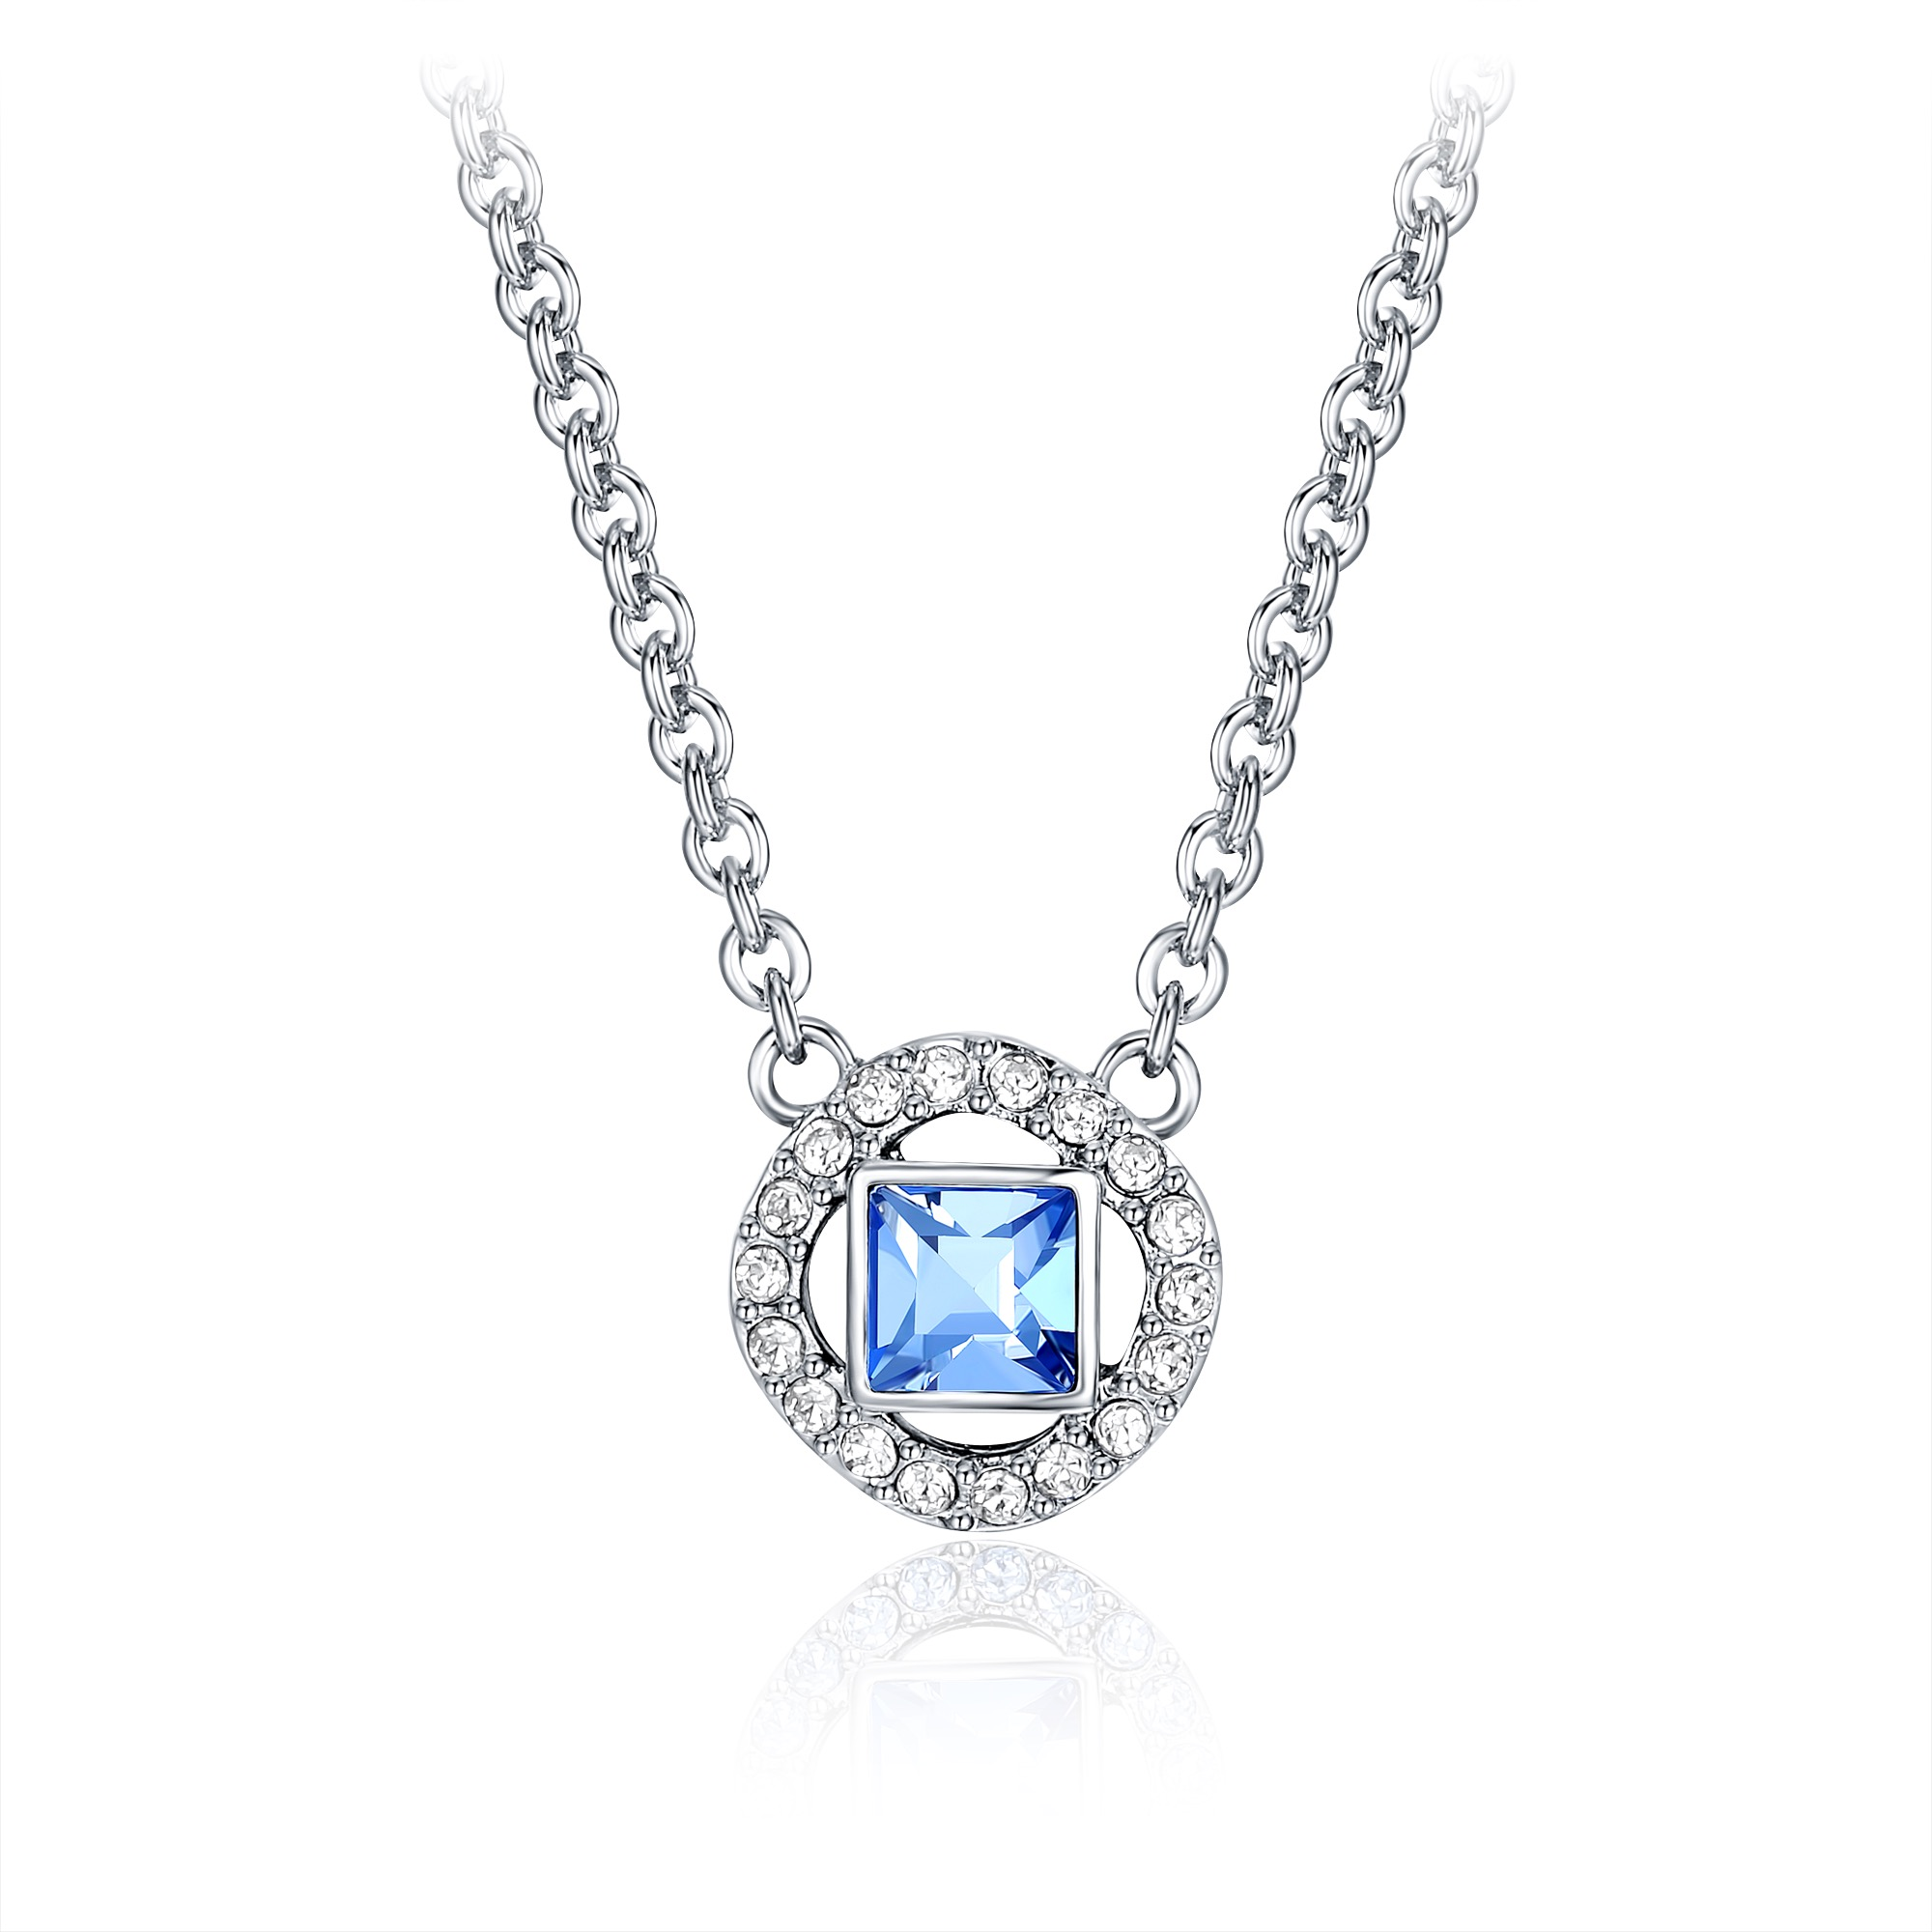 2229e7be7 Angelic Square Pendant with Swarovski Light Sapphire Crystals Rhodium Plated